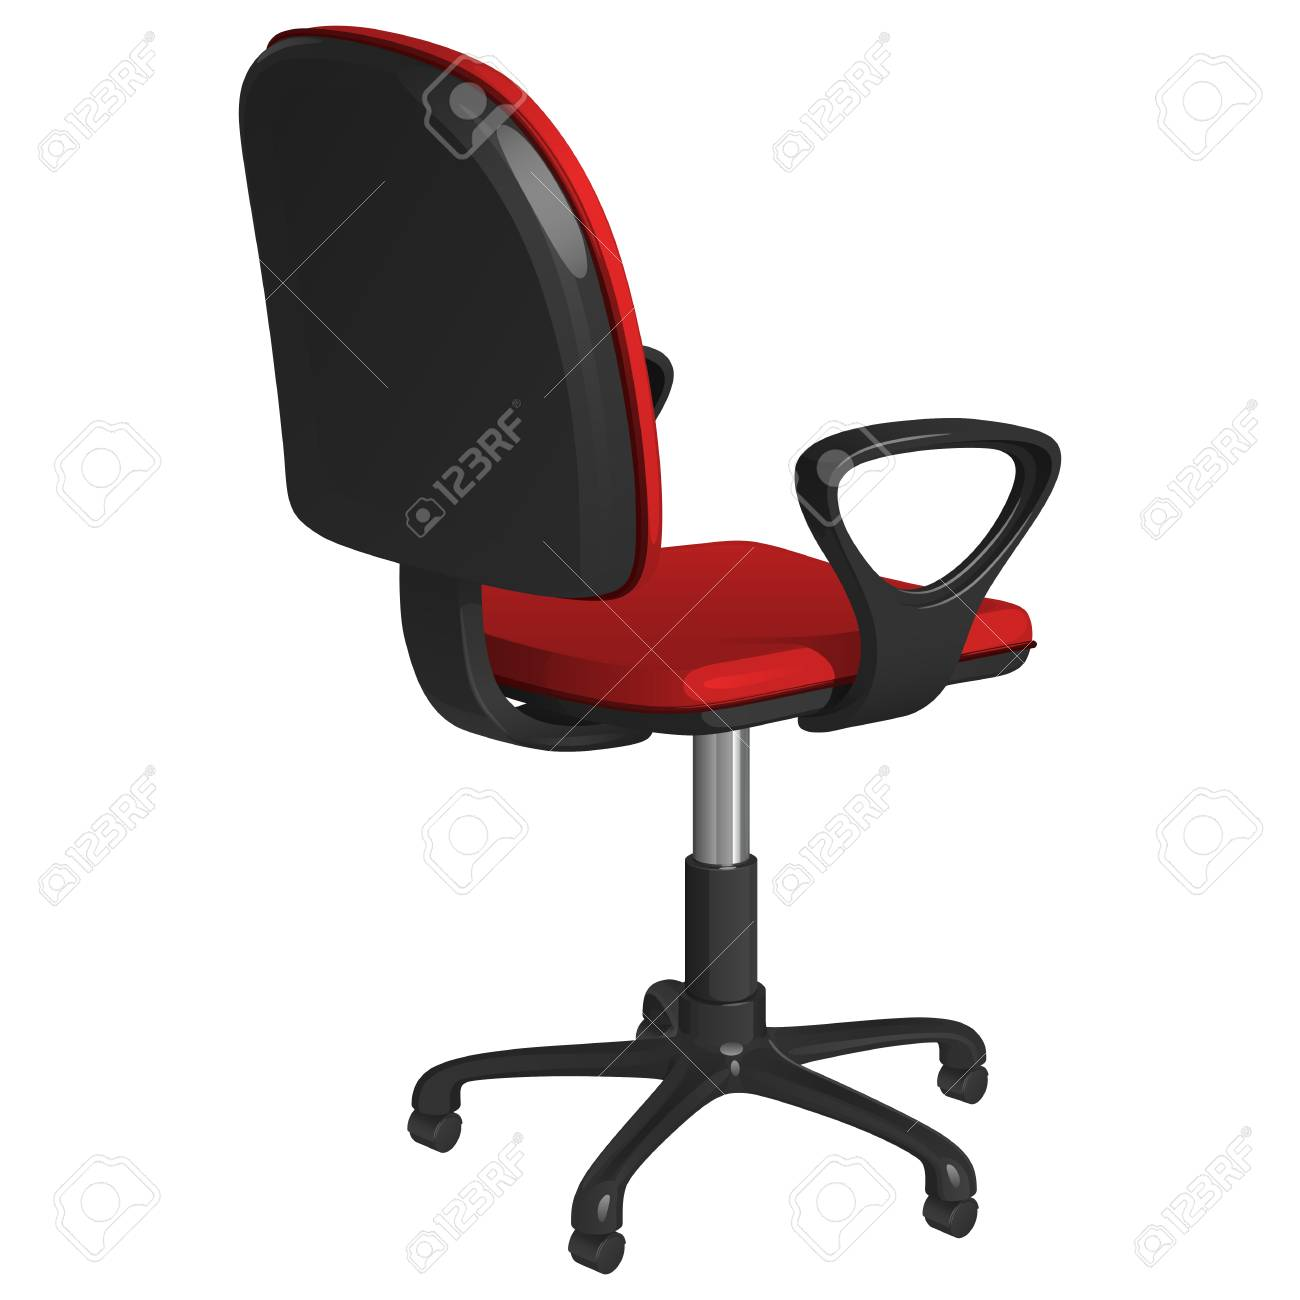 Pedestal Chair Office Swivel Chair On A Pedestal With Wheels With Red Upholstery